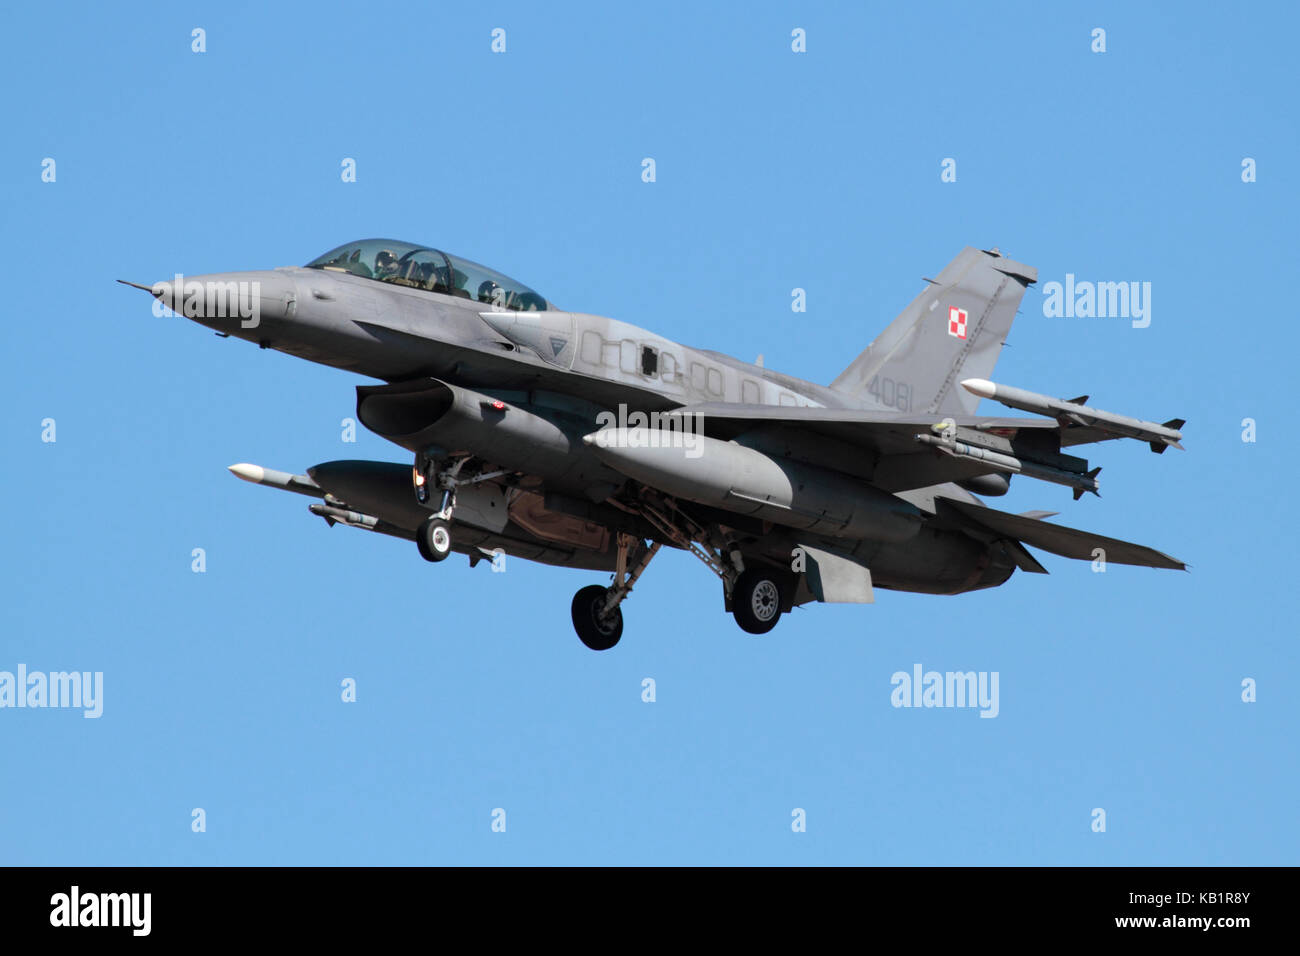 Modern military aircraft. Polish Air Force F-16D combat jet plane on approach, equipped with conformal fuel tanks (CFTs) on the fuselage Stock Photo